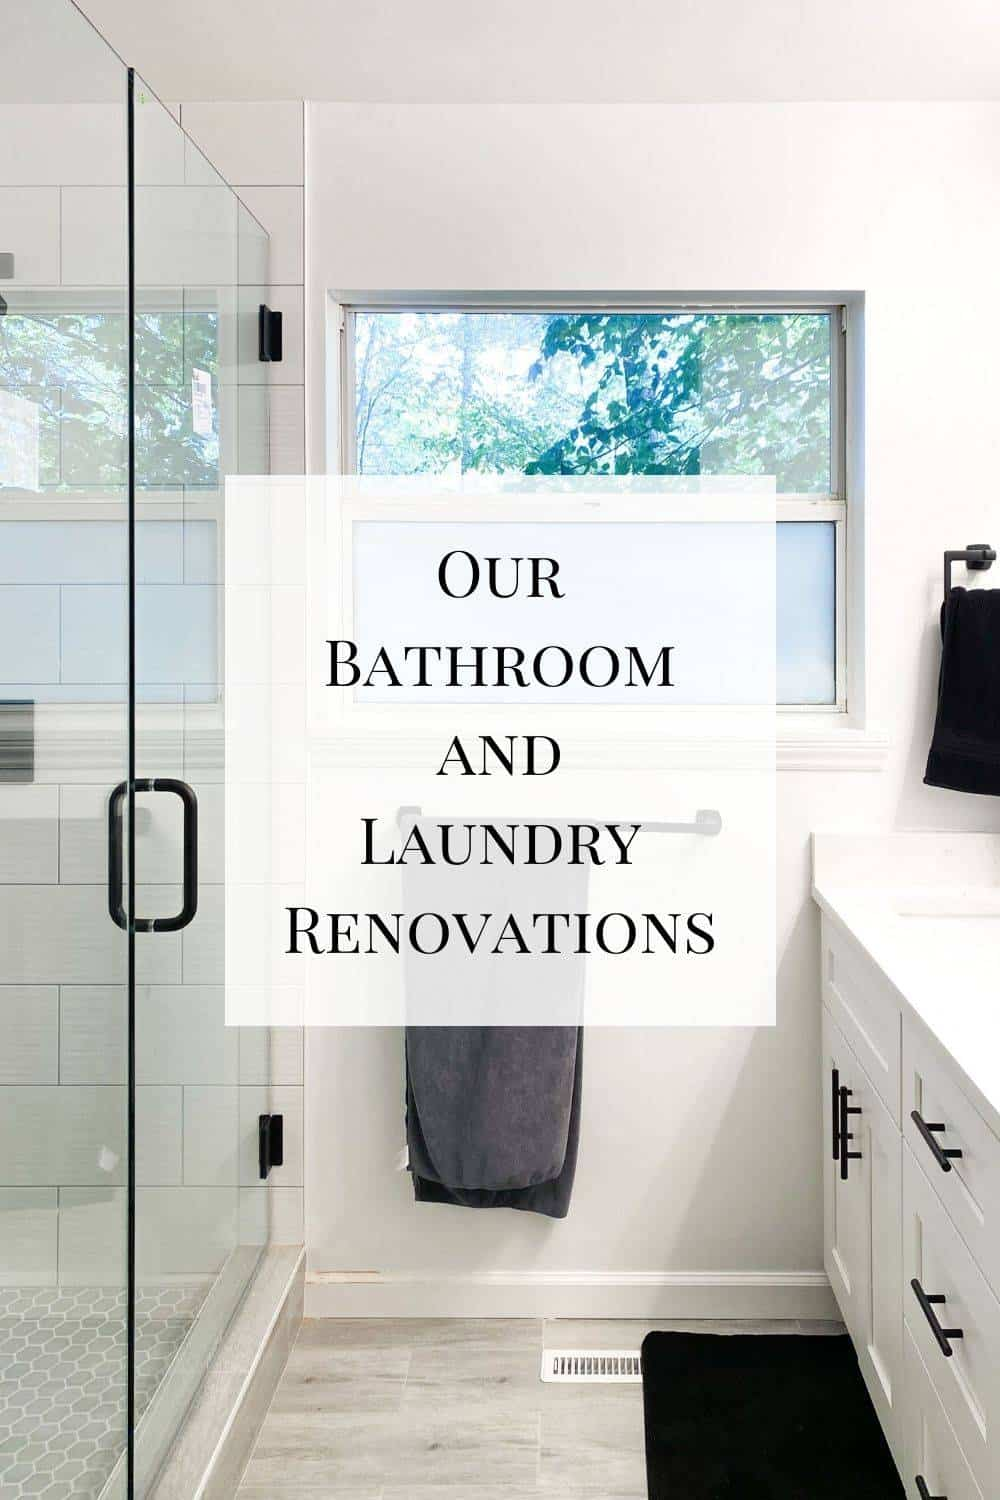 A look at our bathroom and laundry renovations - the last of our interior renovations we had done.